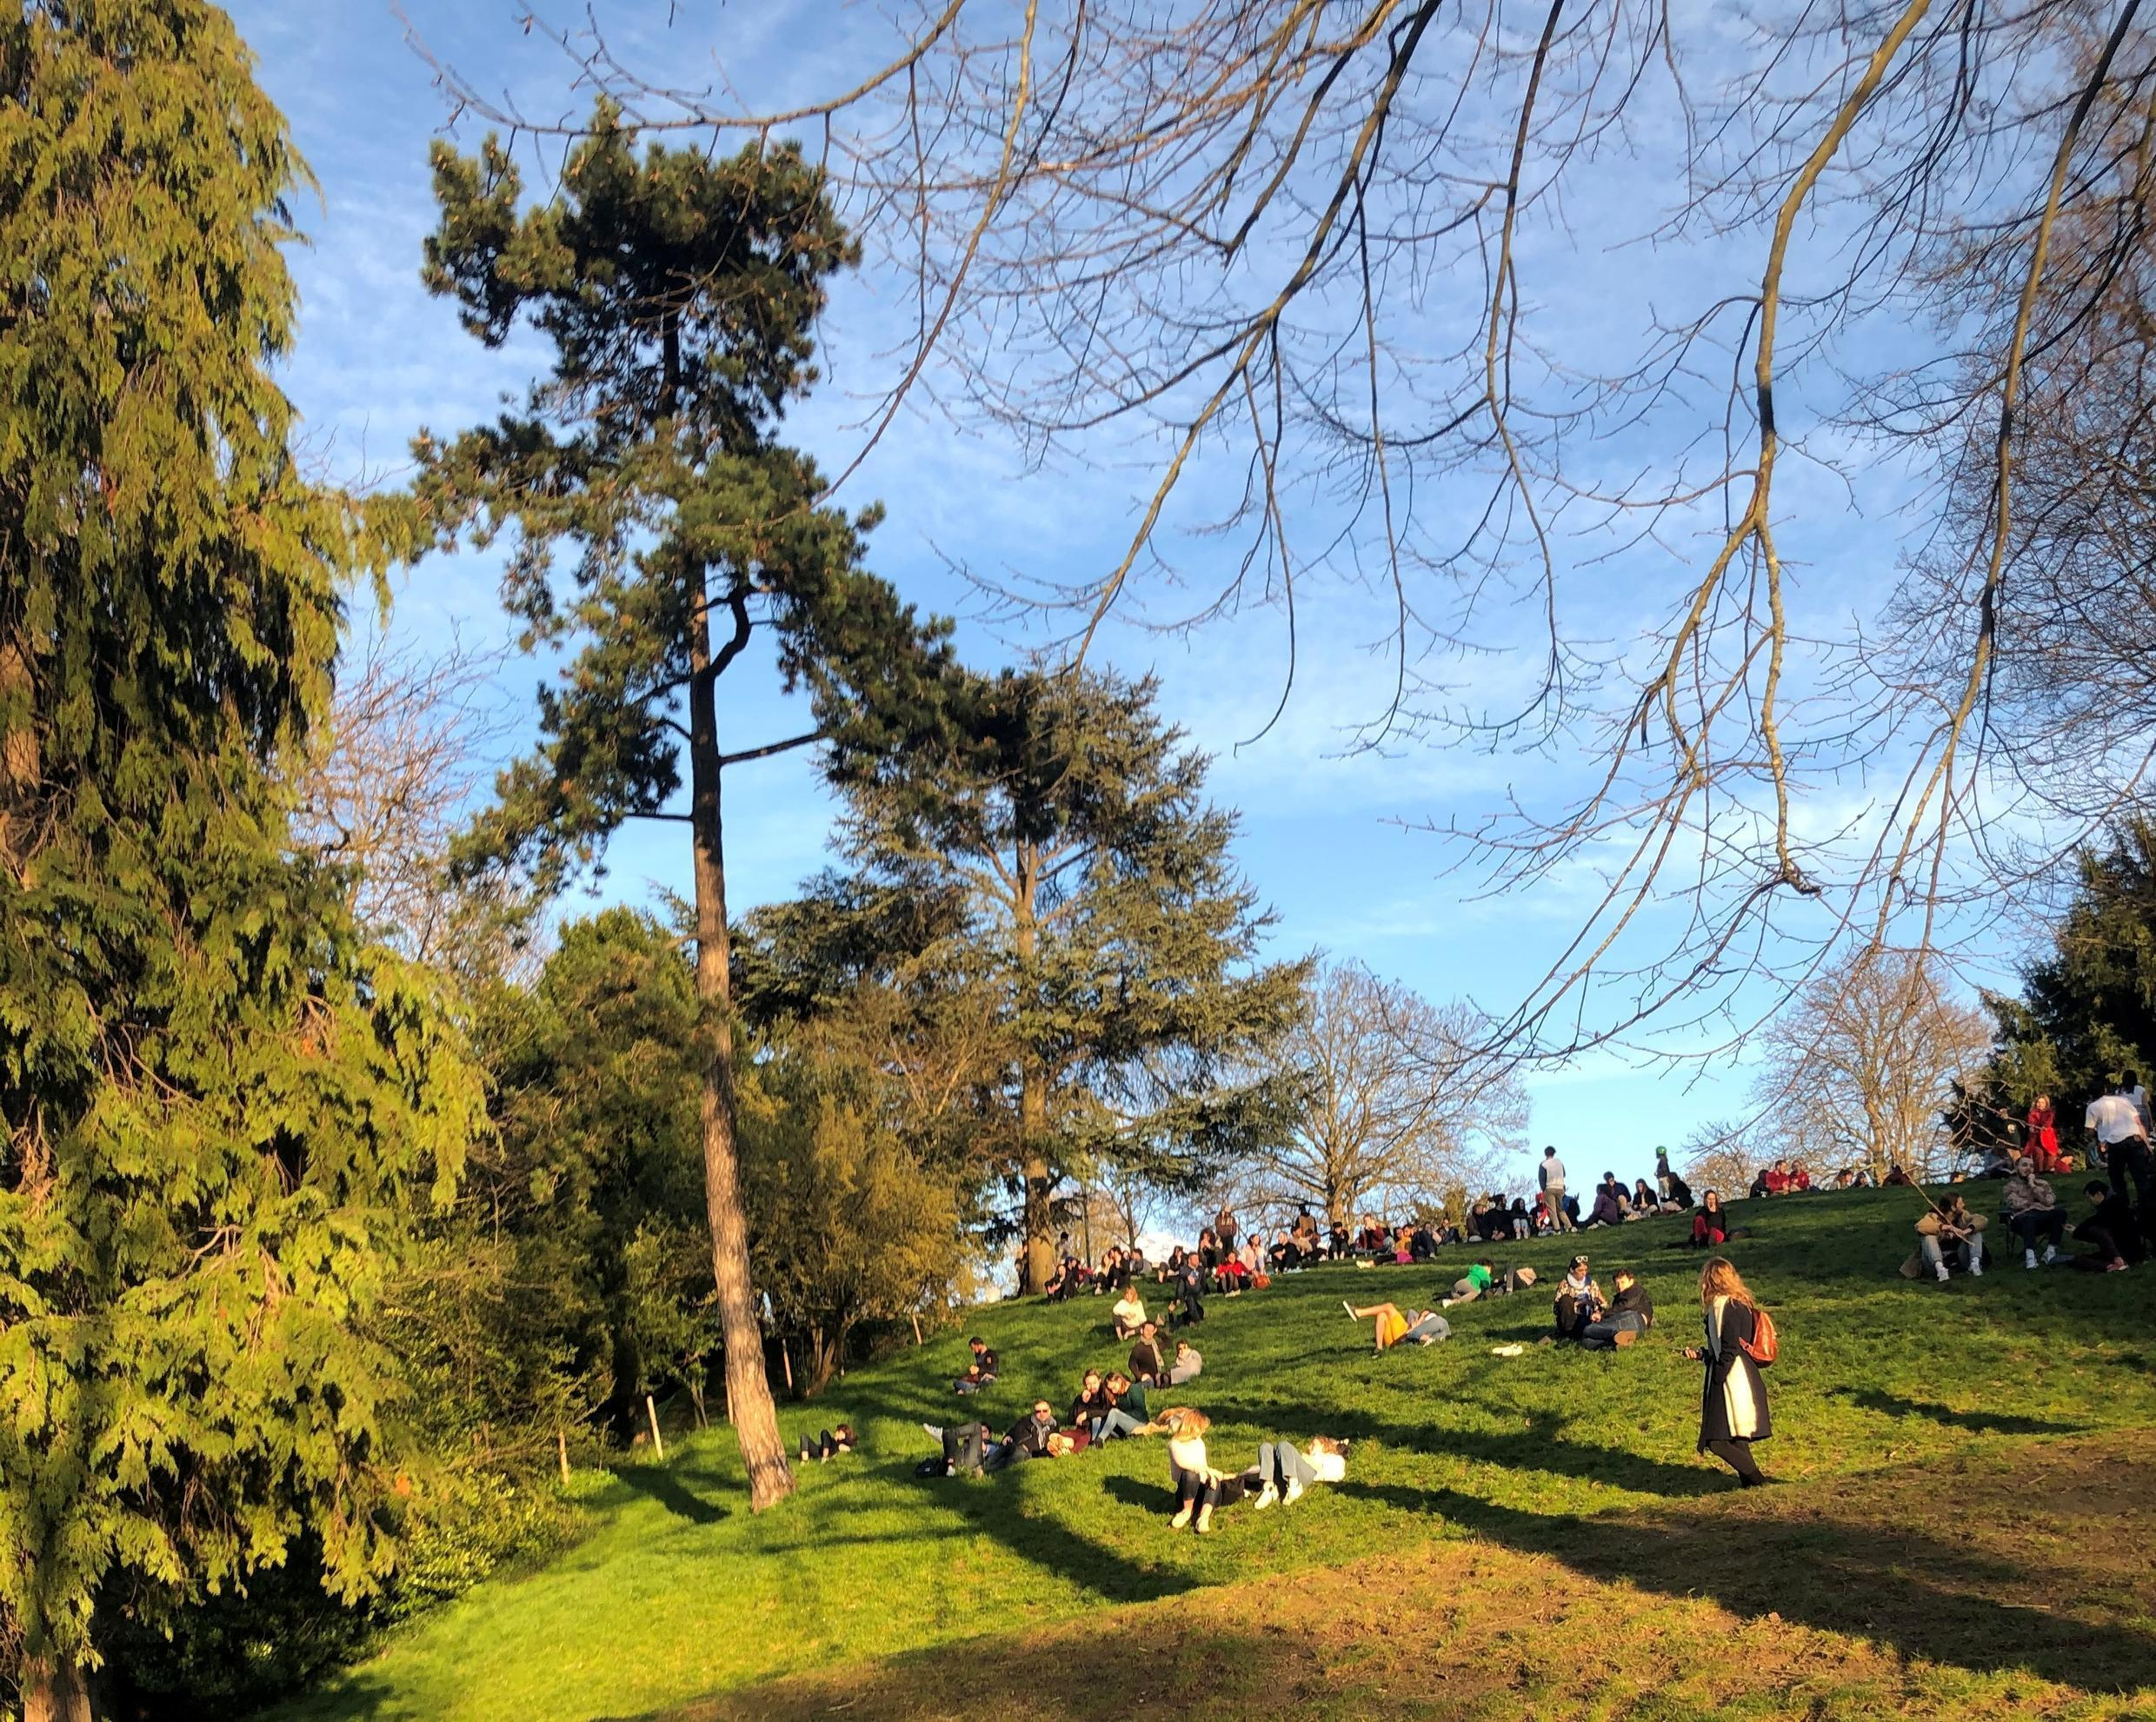 Parisiens gather to enjoy some spring sunshine at the Buttes Chaumont park at the weekend, ignoring government advice to stay indoors and respect social distancing.